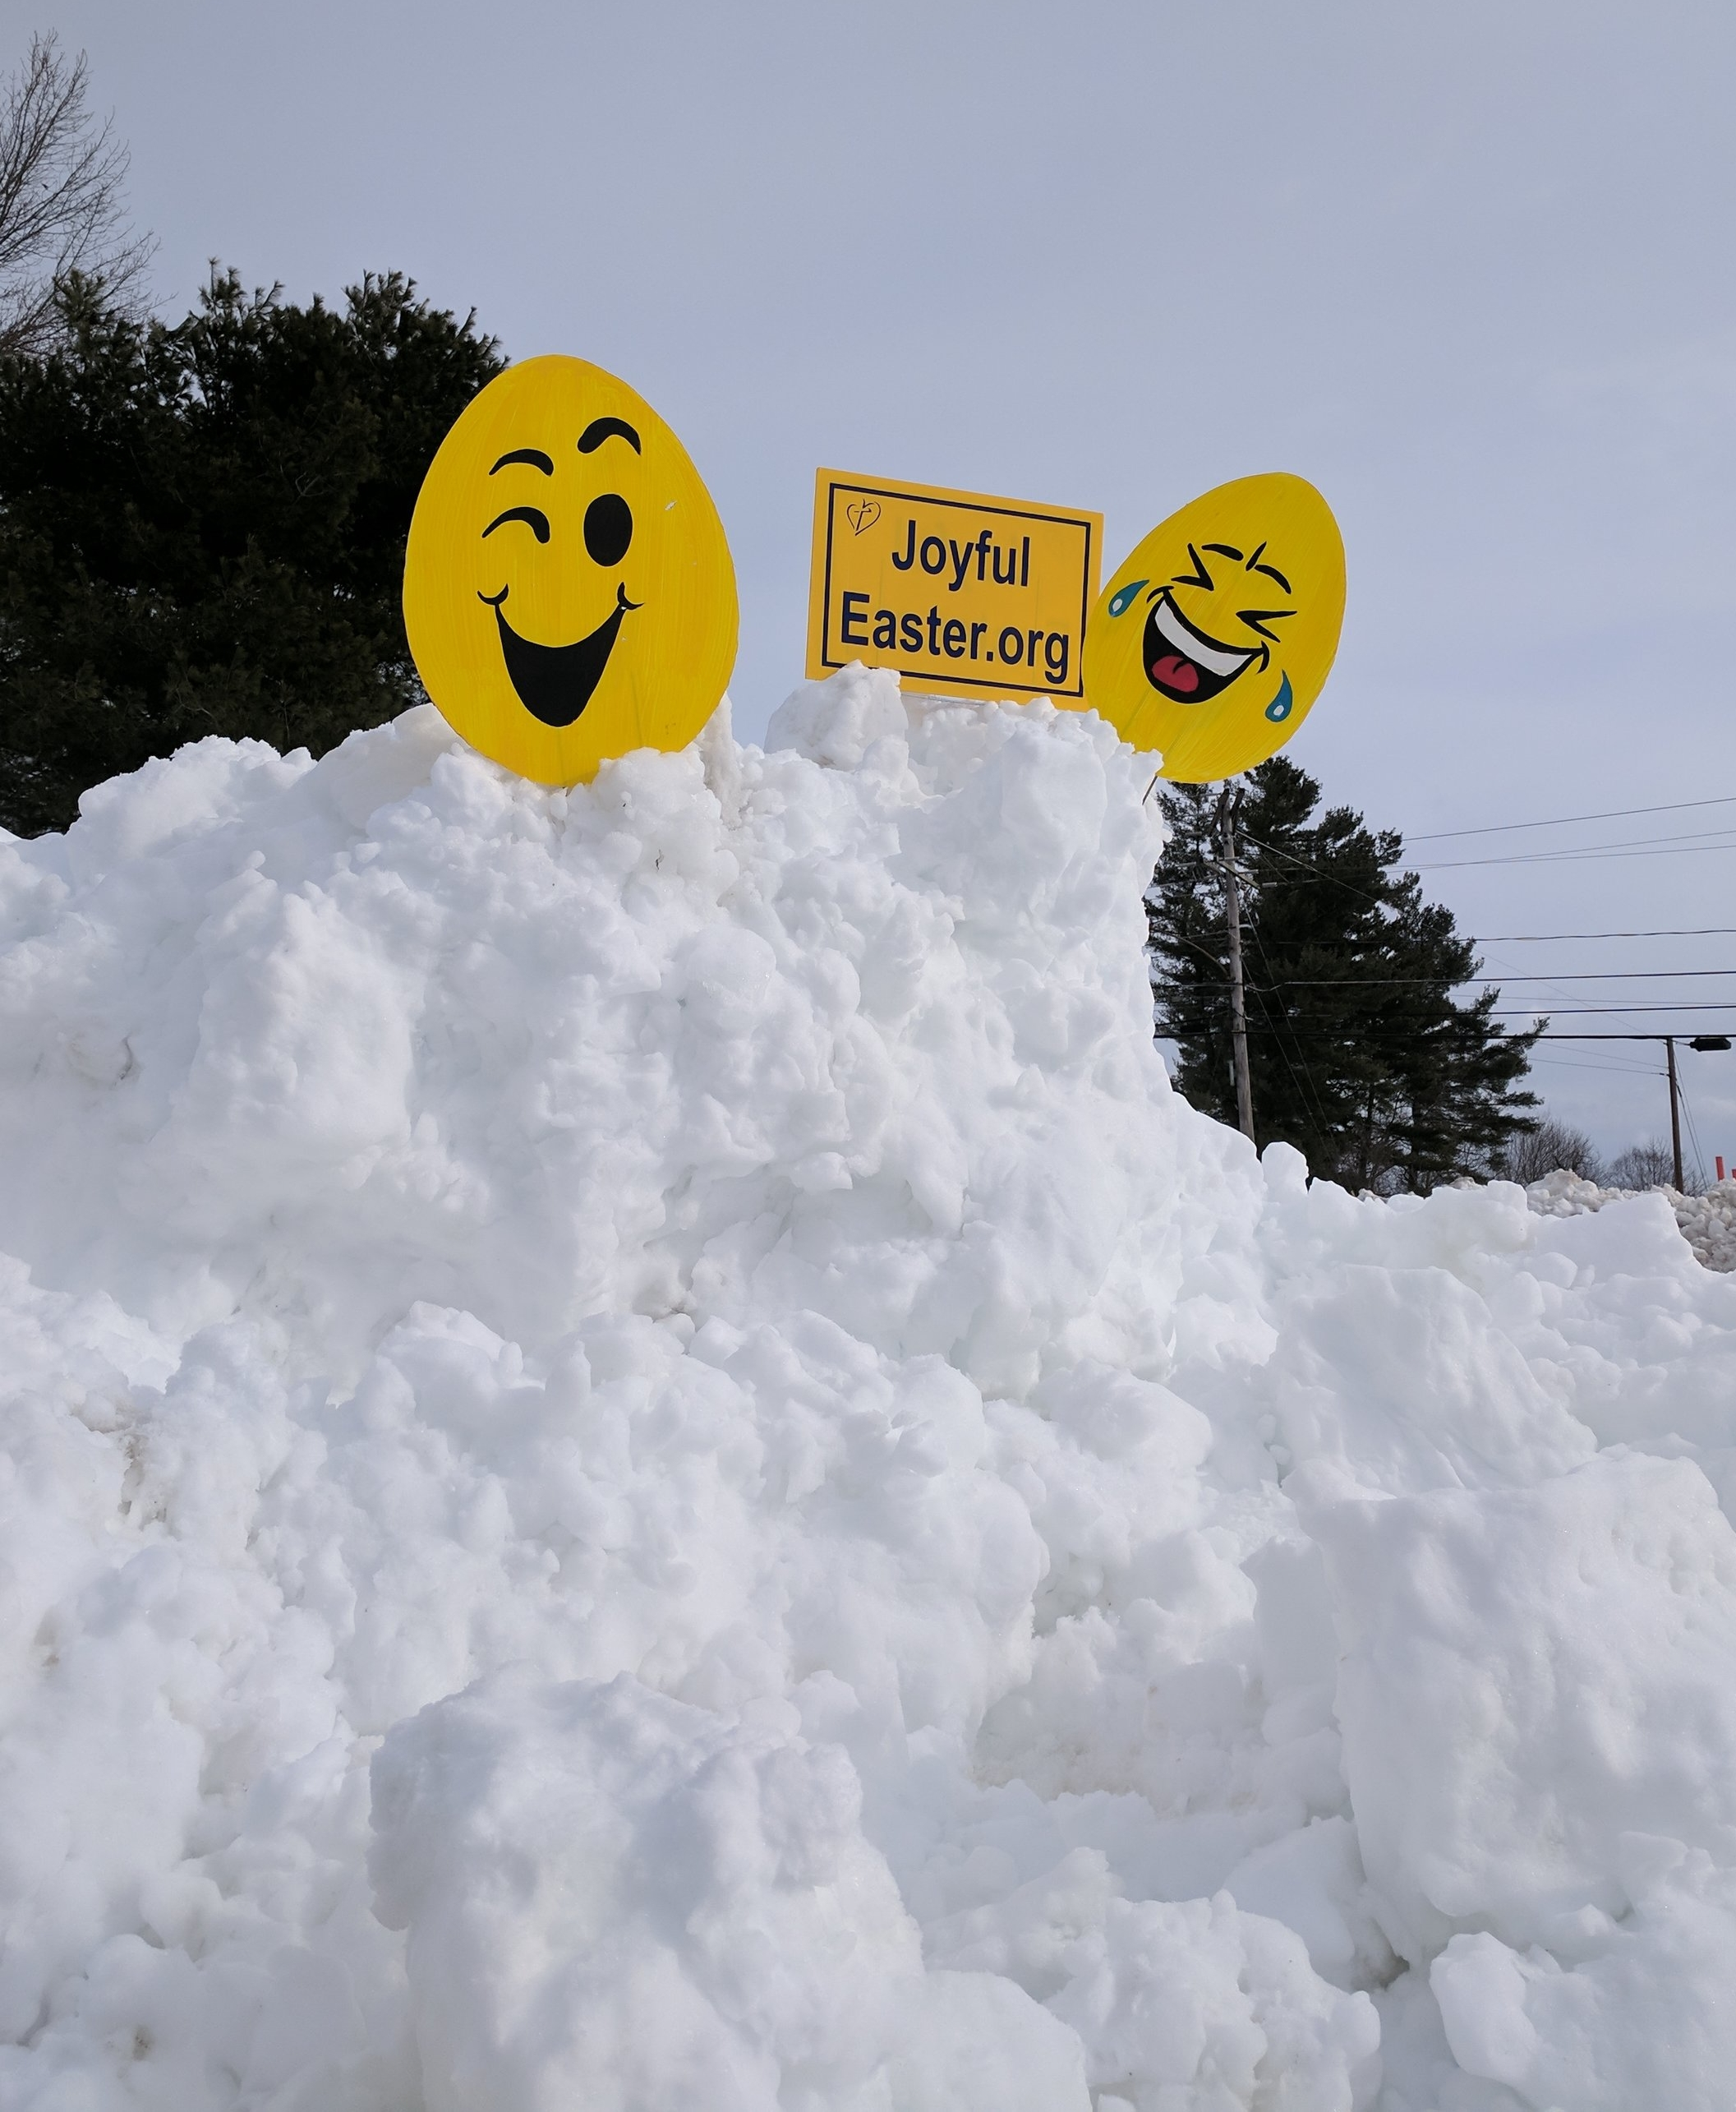 Have you dug out your Joyful Easter sign and put it back where it can be seen?